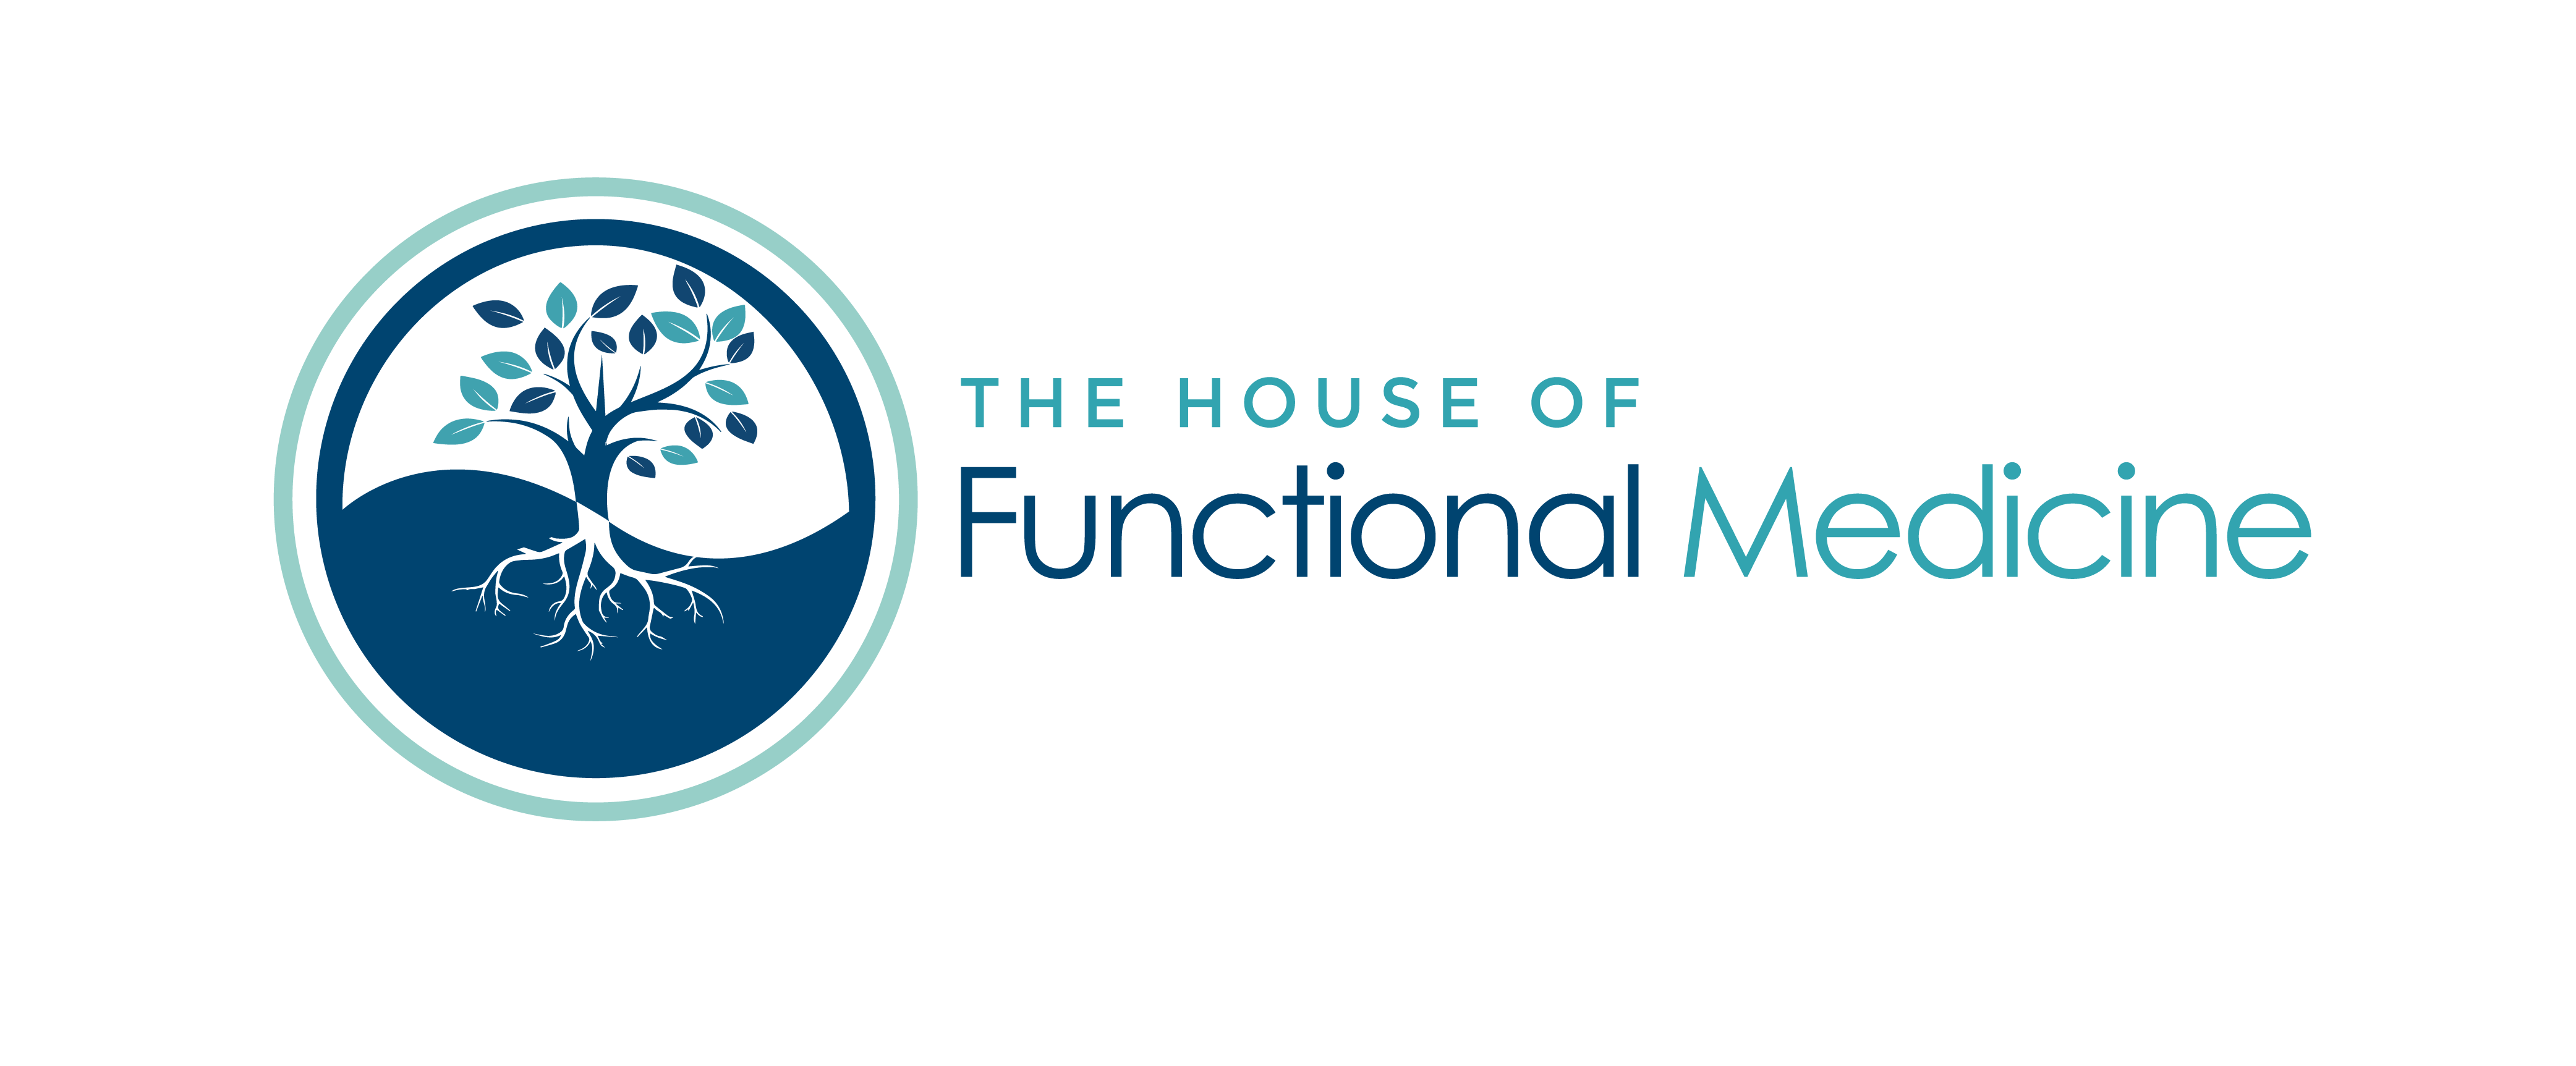 The House of Functional Medicine